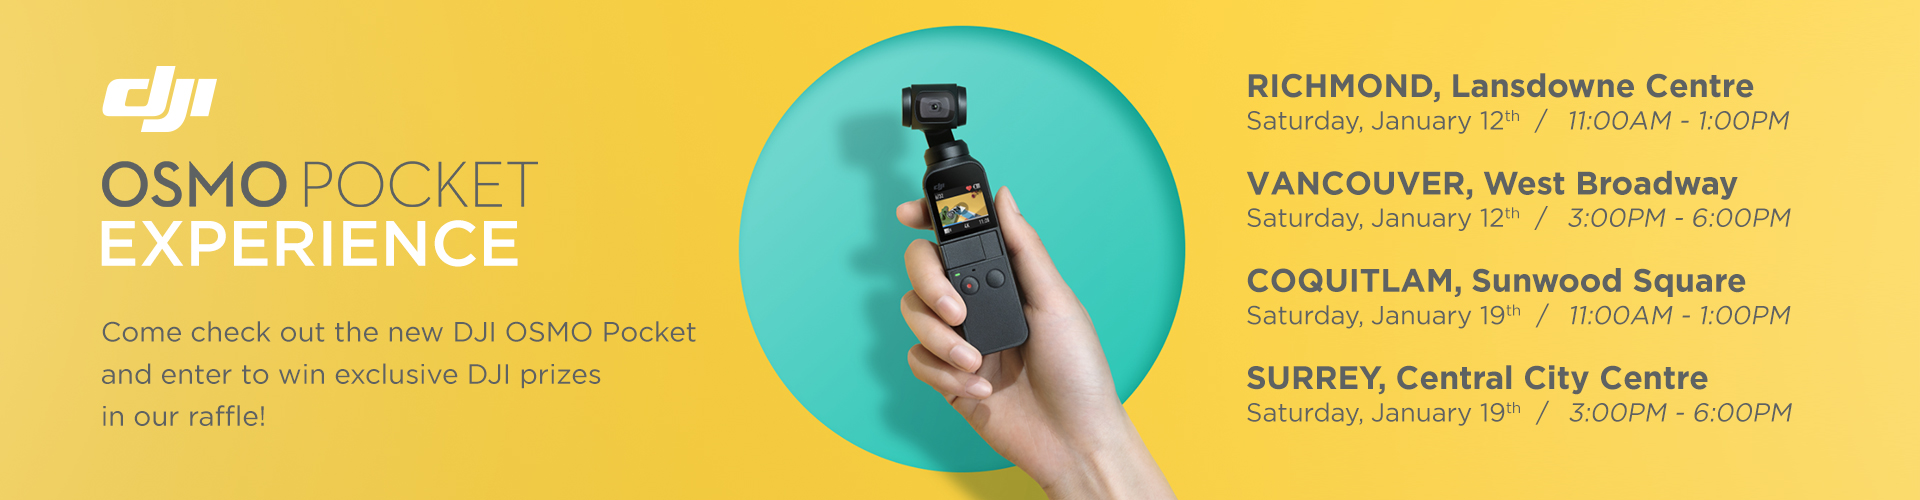 The DJI Osmo Pocket experiece